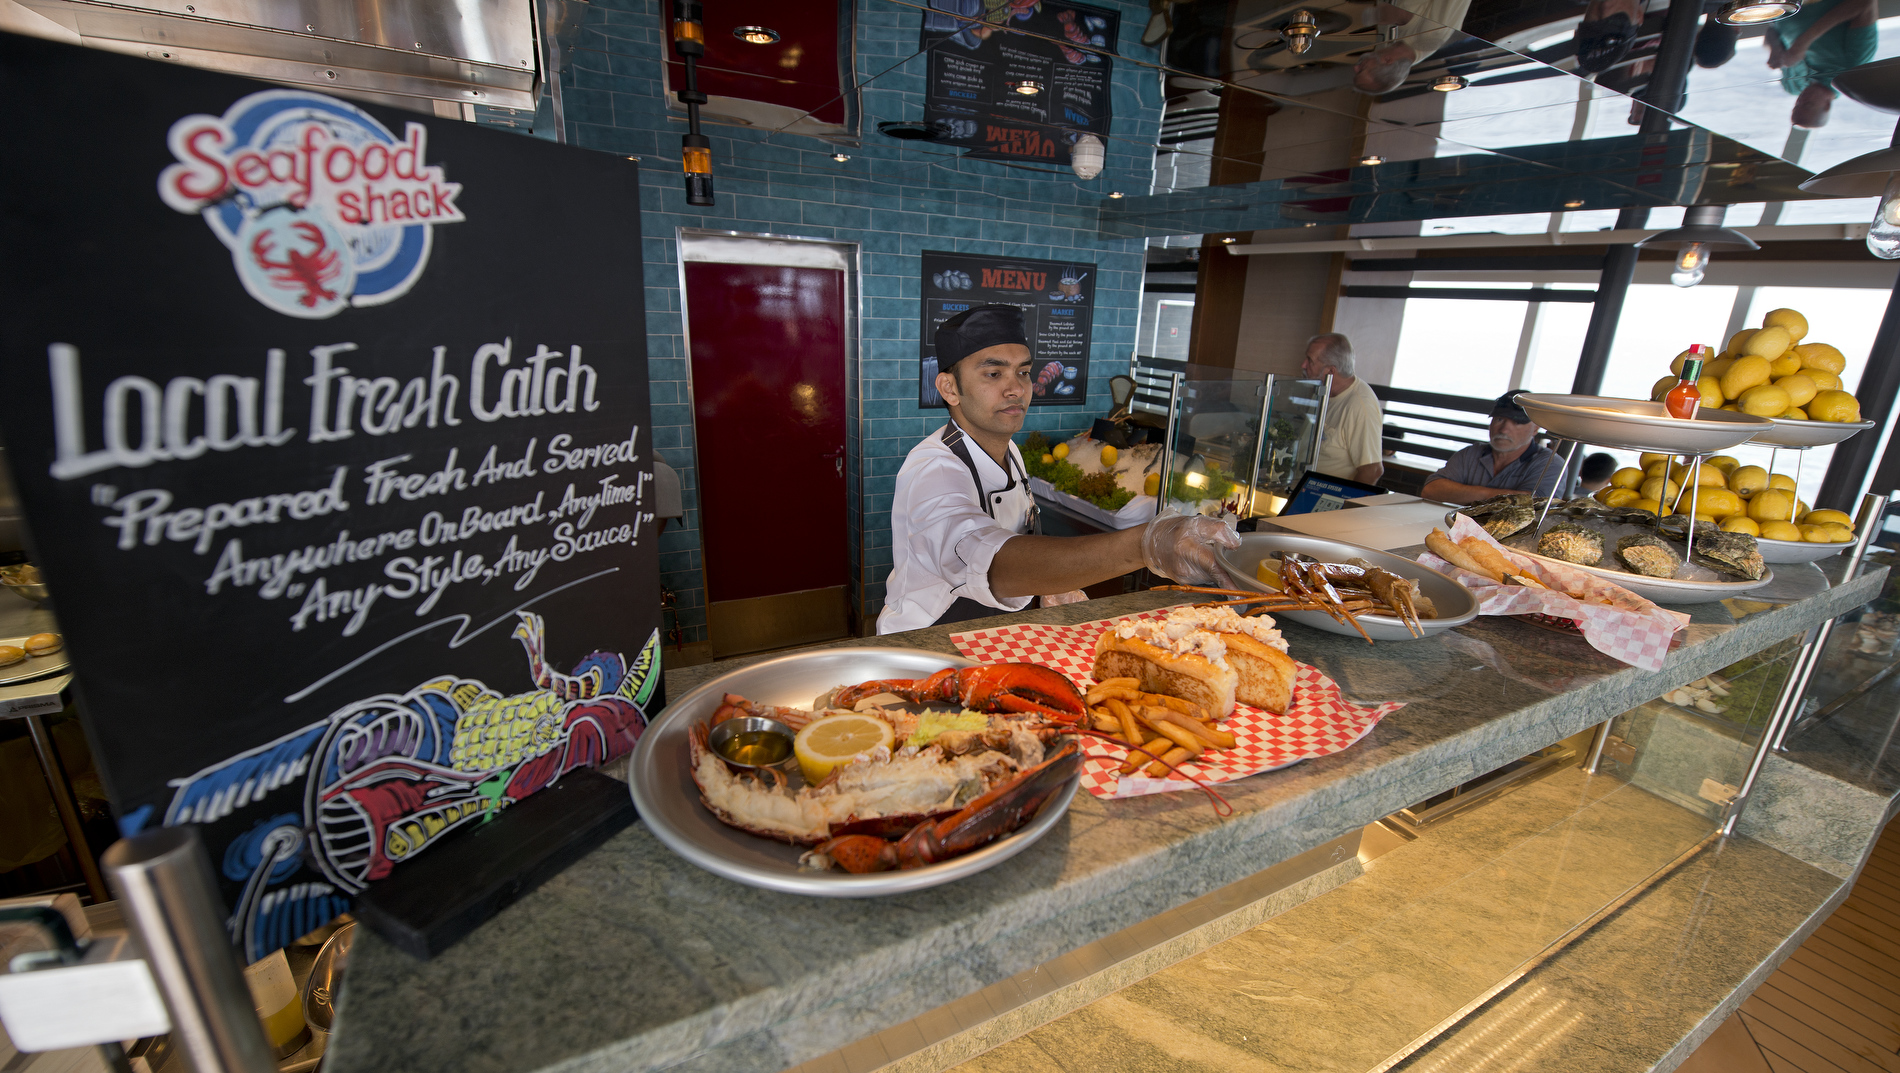 Carnival Vista Offers Nearly 30 Dining and Bar Venues Showcasing Diverse Flavors from Around the World